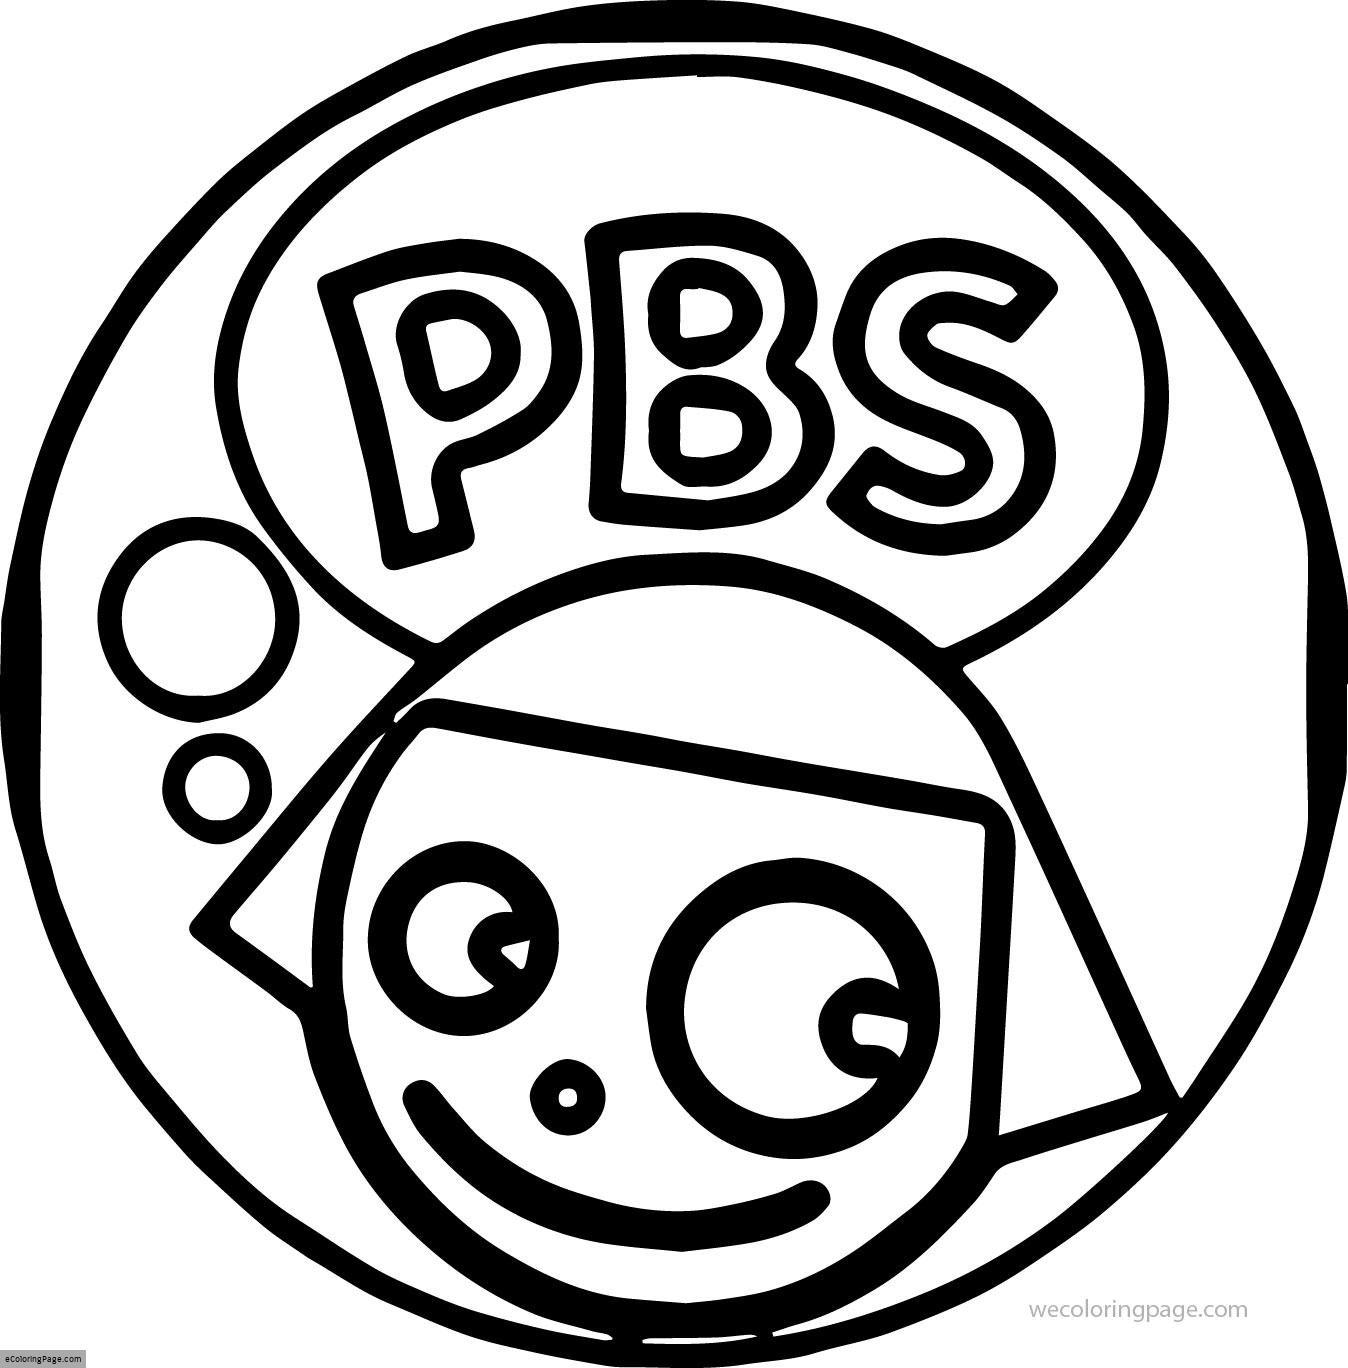 1348x1368 Pbs Kids Coloring Pages For Kids Ecoloringpage Printable Pbs